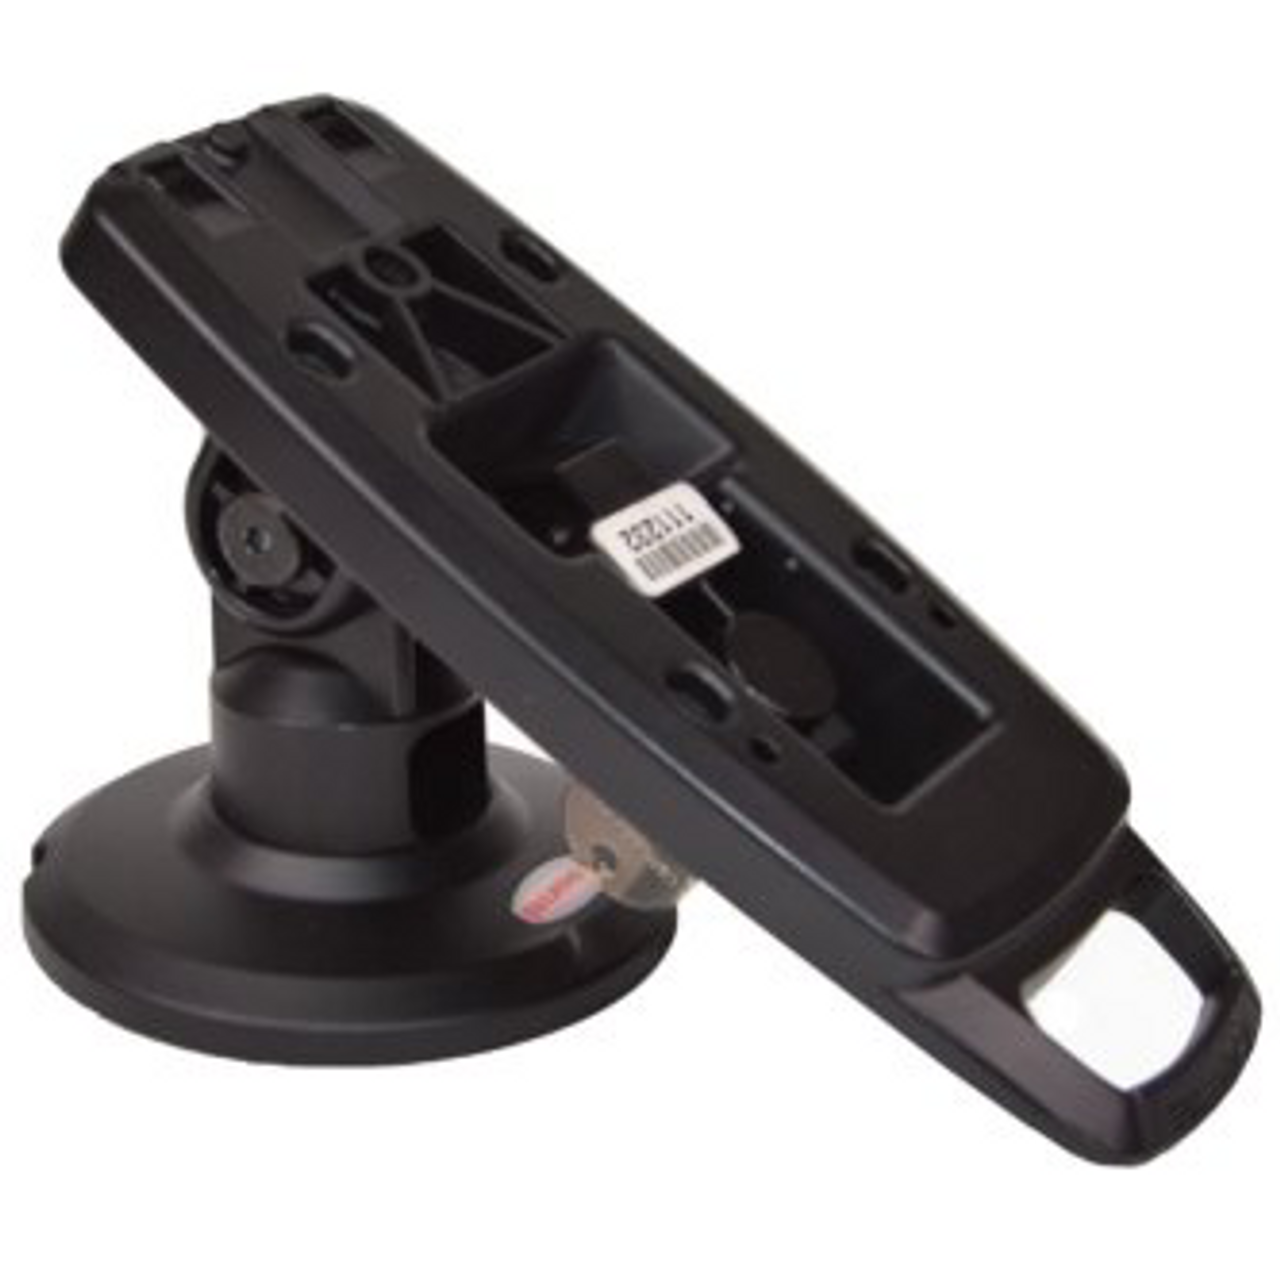 Verifone P200 or P400 Safe Base Compact Stand